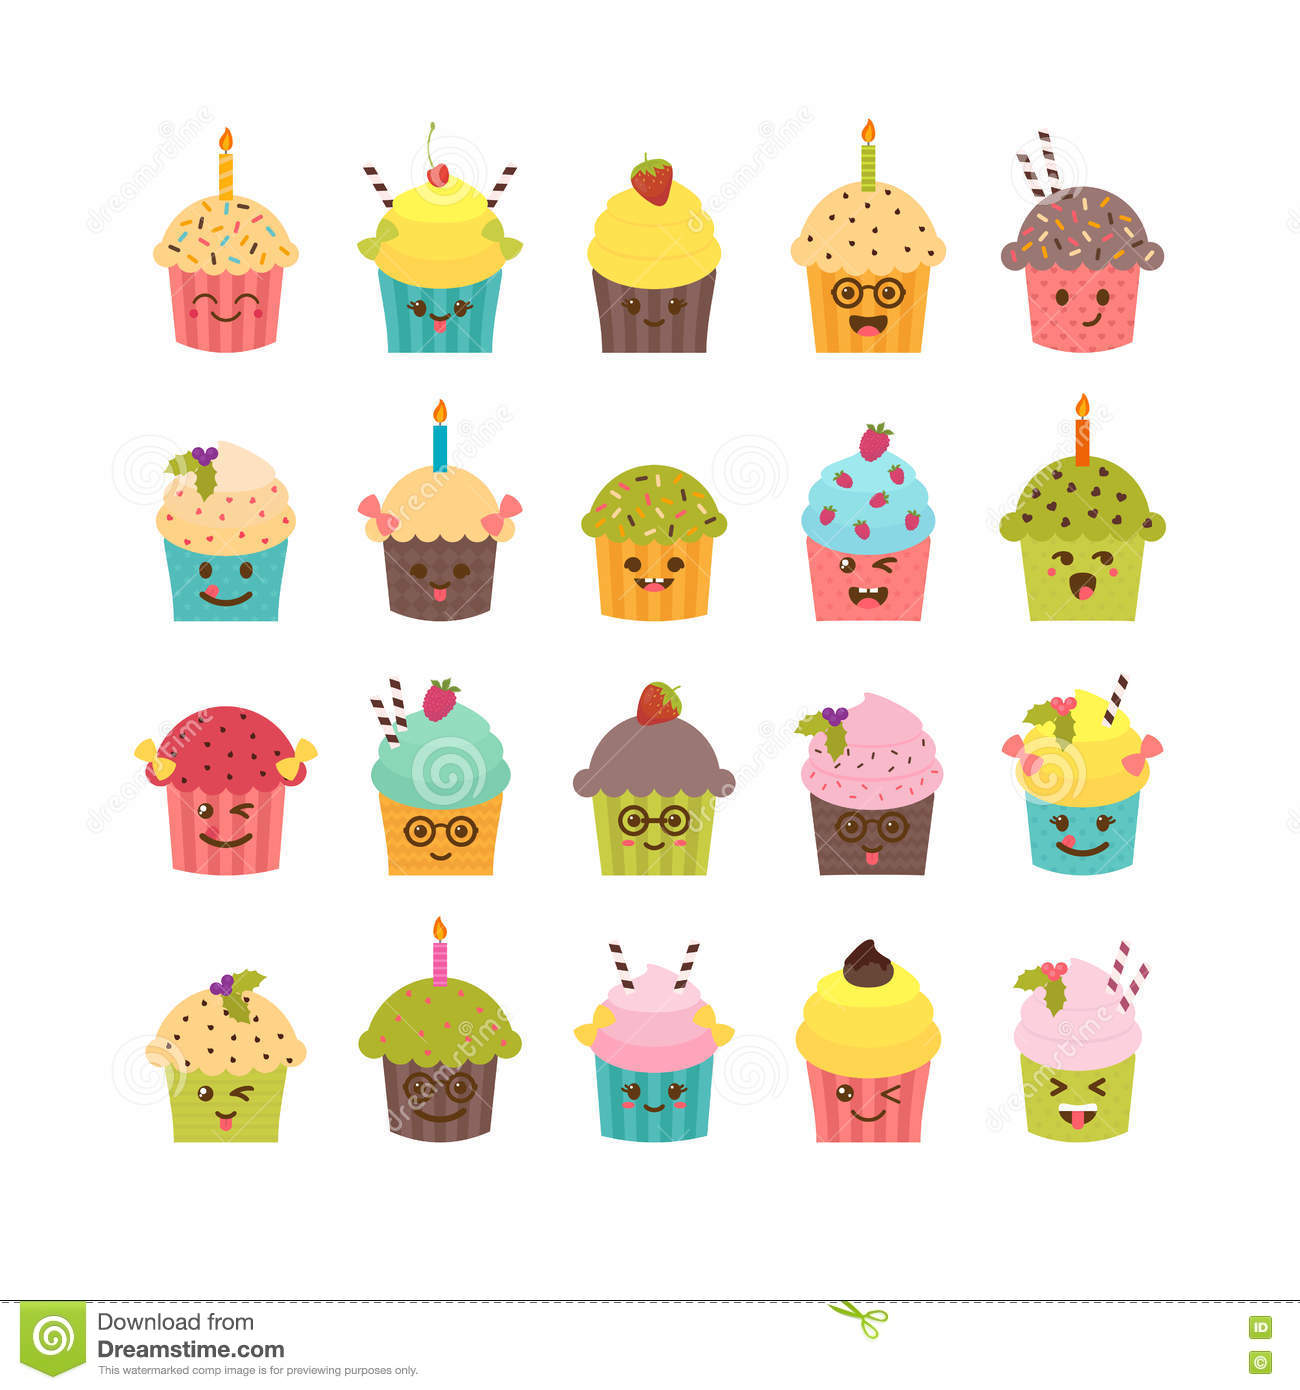 Set Of Cupcakes And Muffins Kawaii Cute Cartoon Characters Emoji Birthday Icons Desserts Vector Illustration